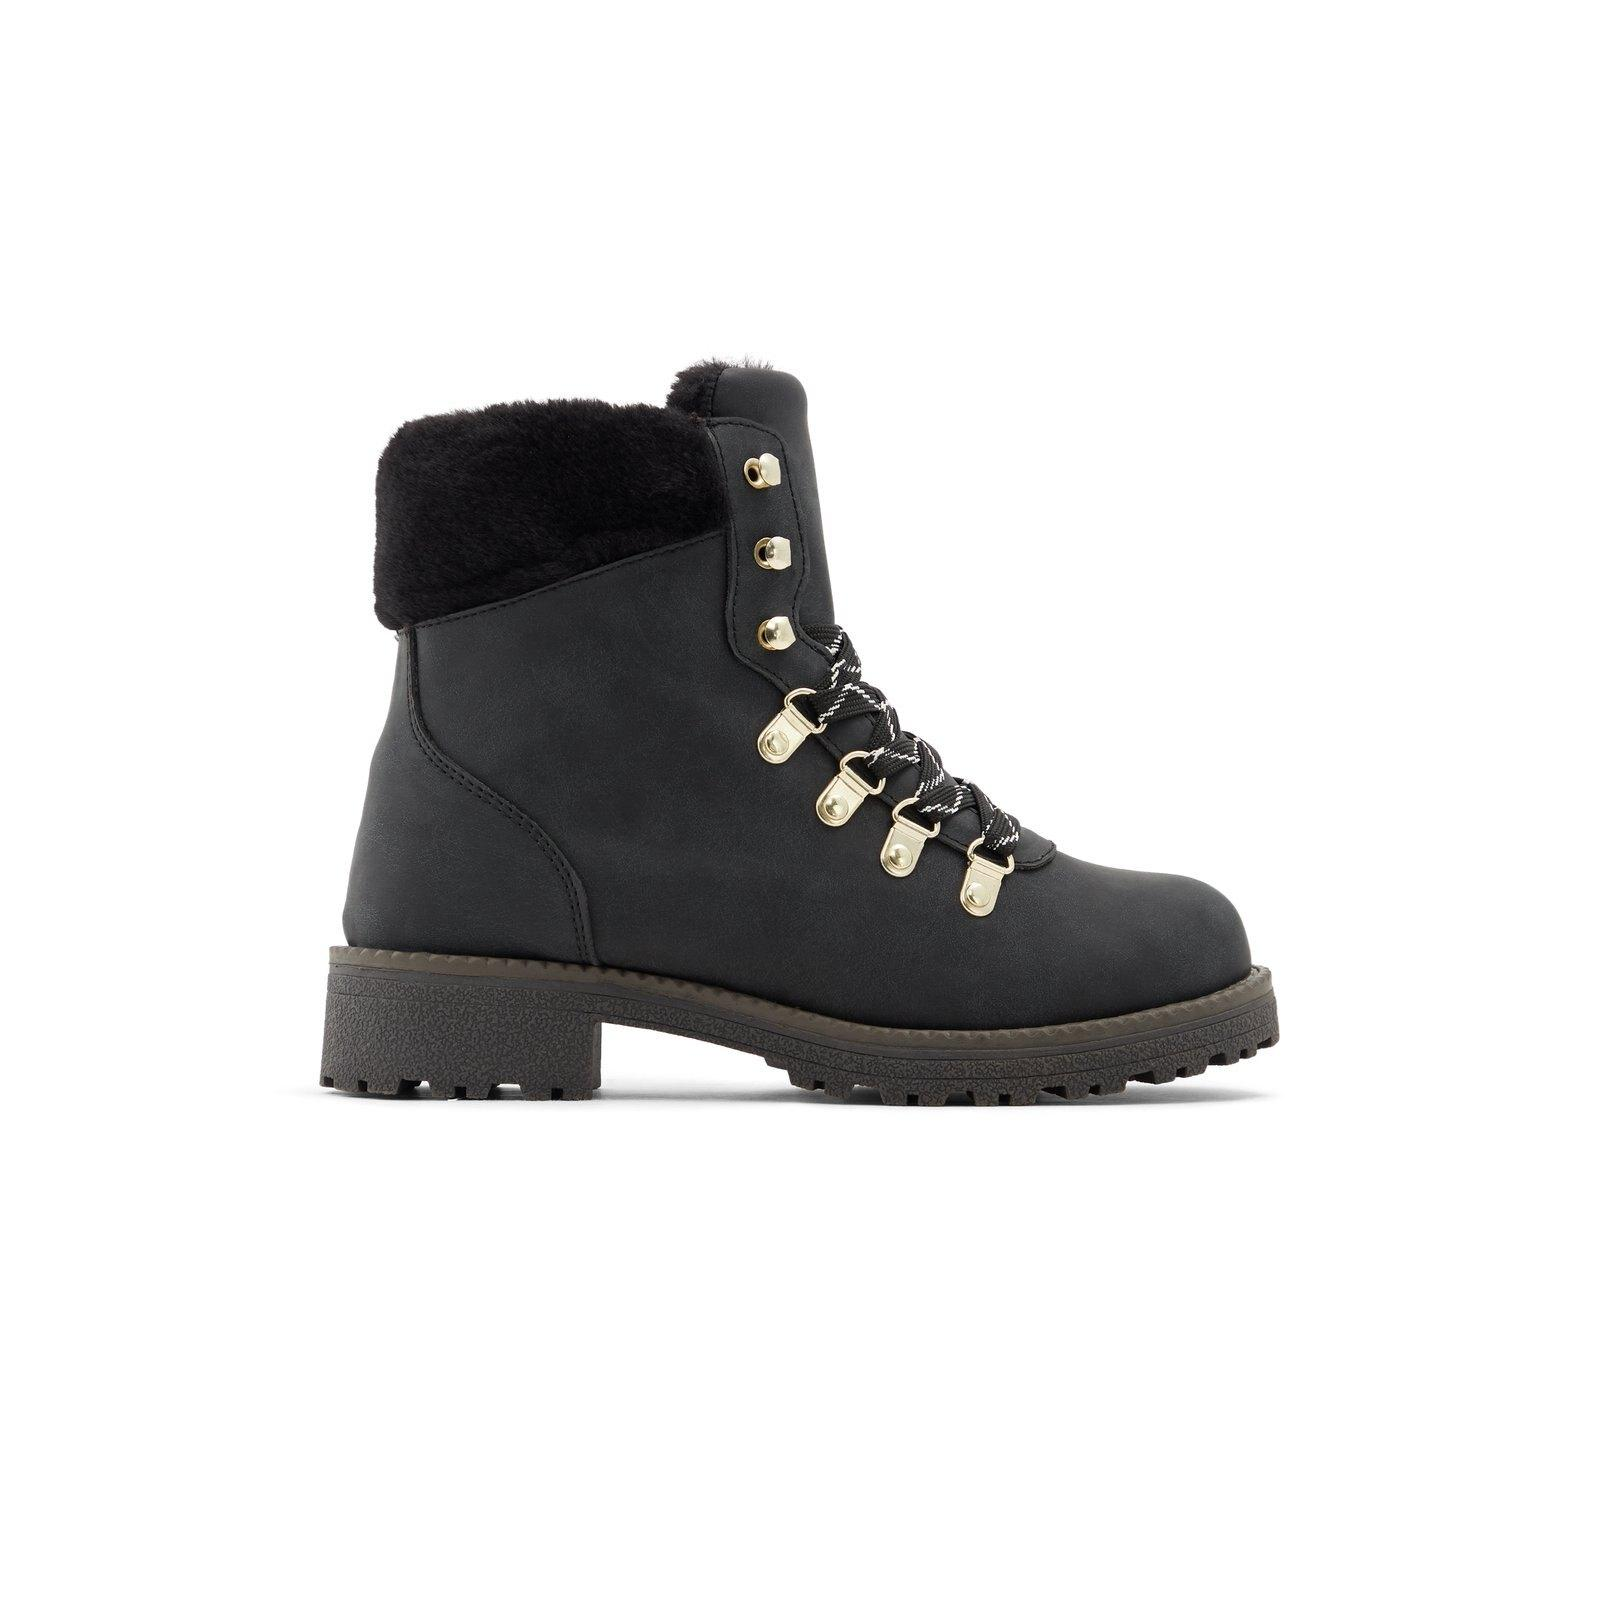 Eco-Friendly and Vegan Snow Boots to